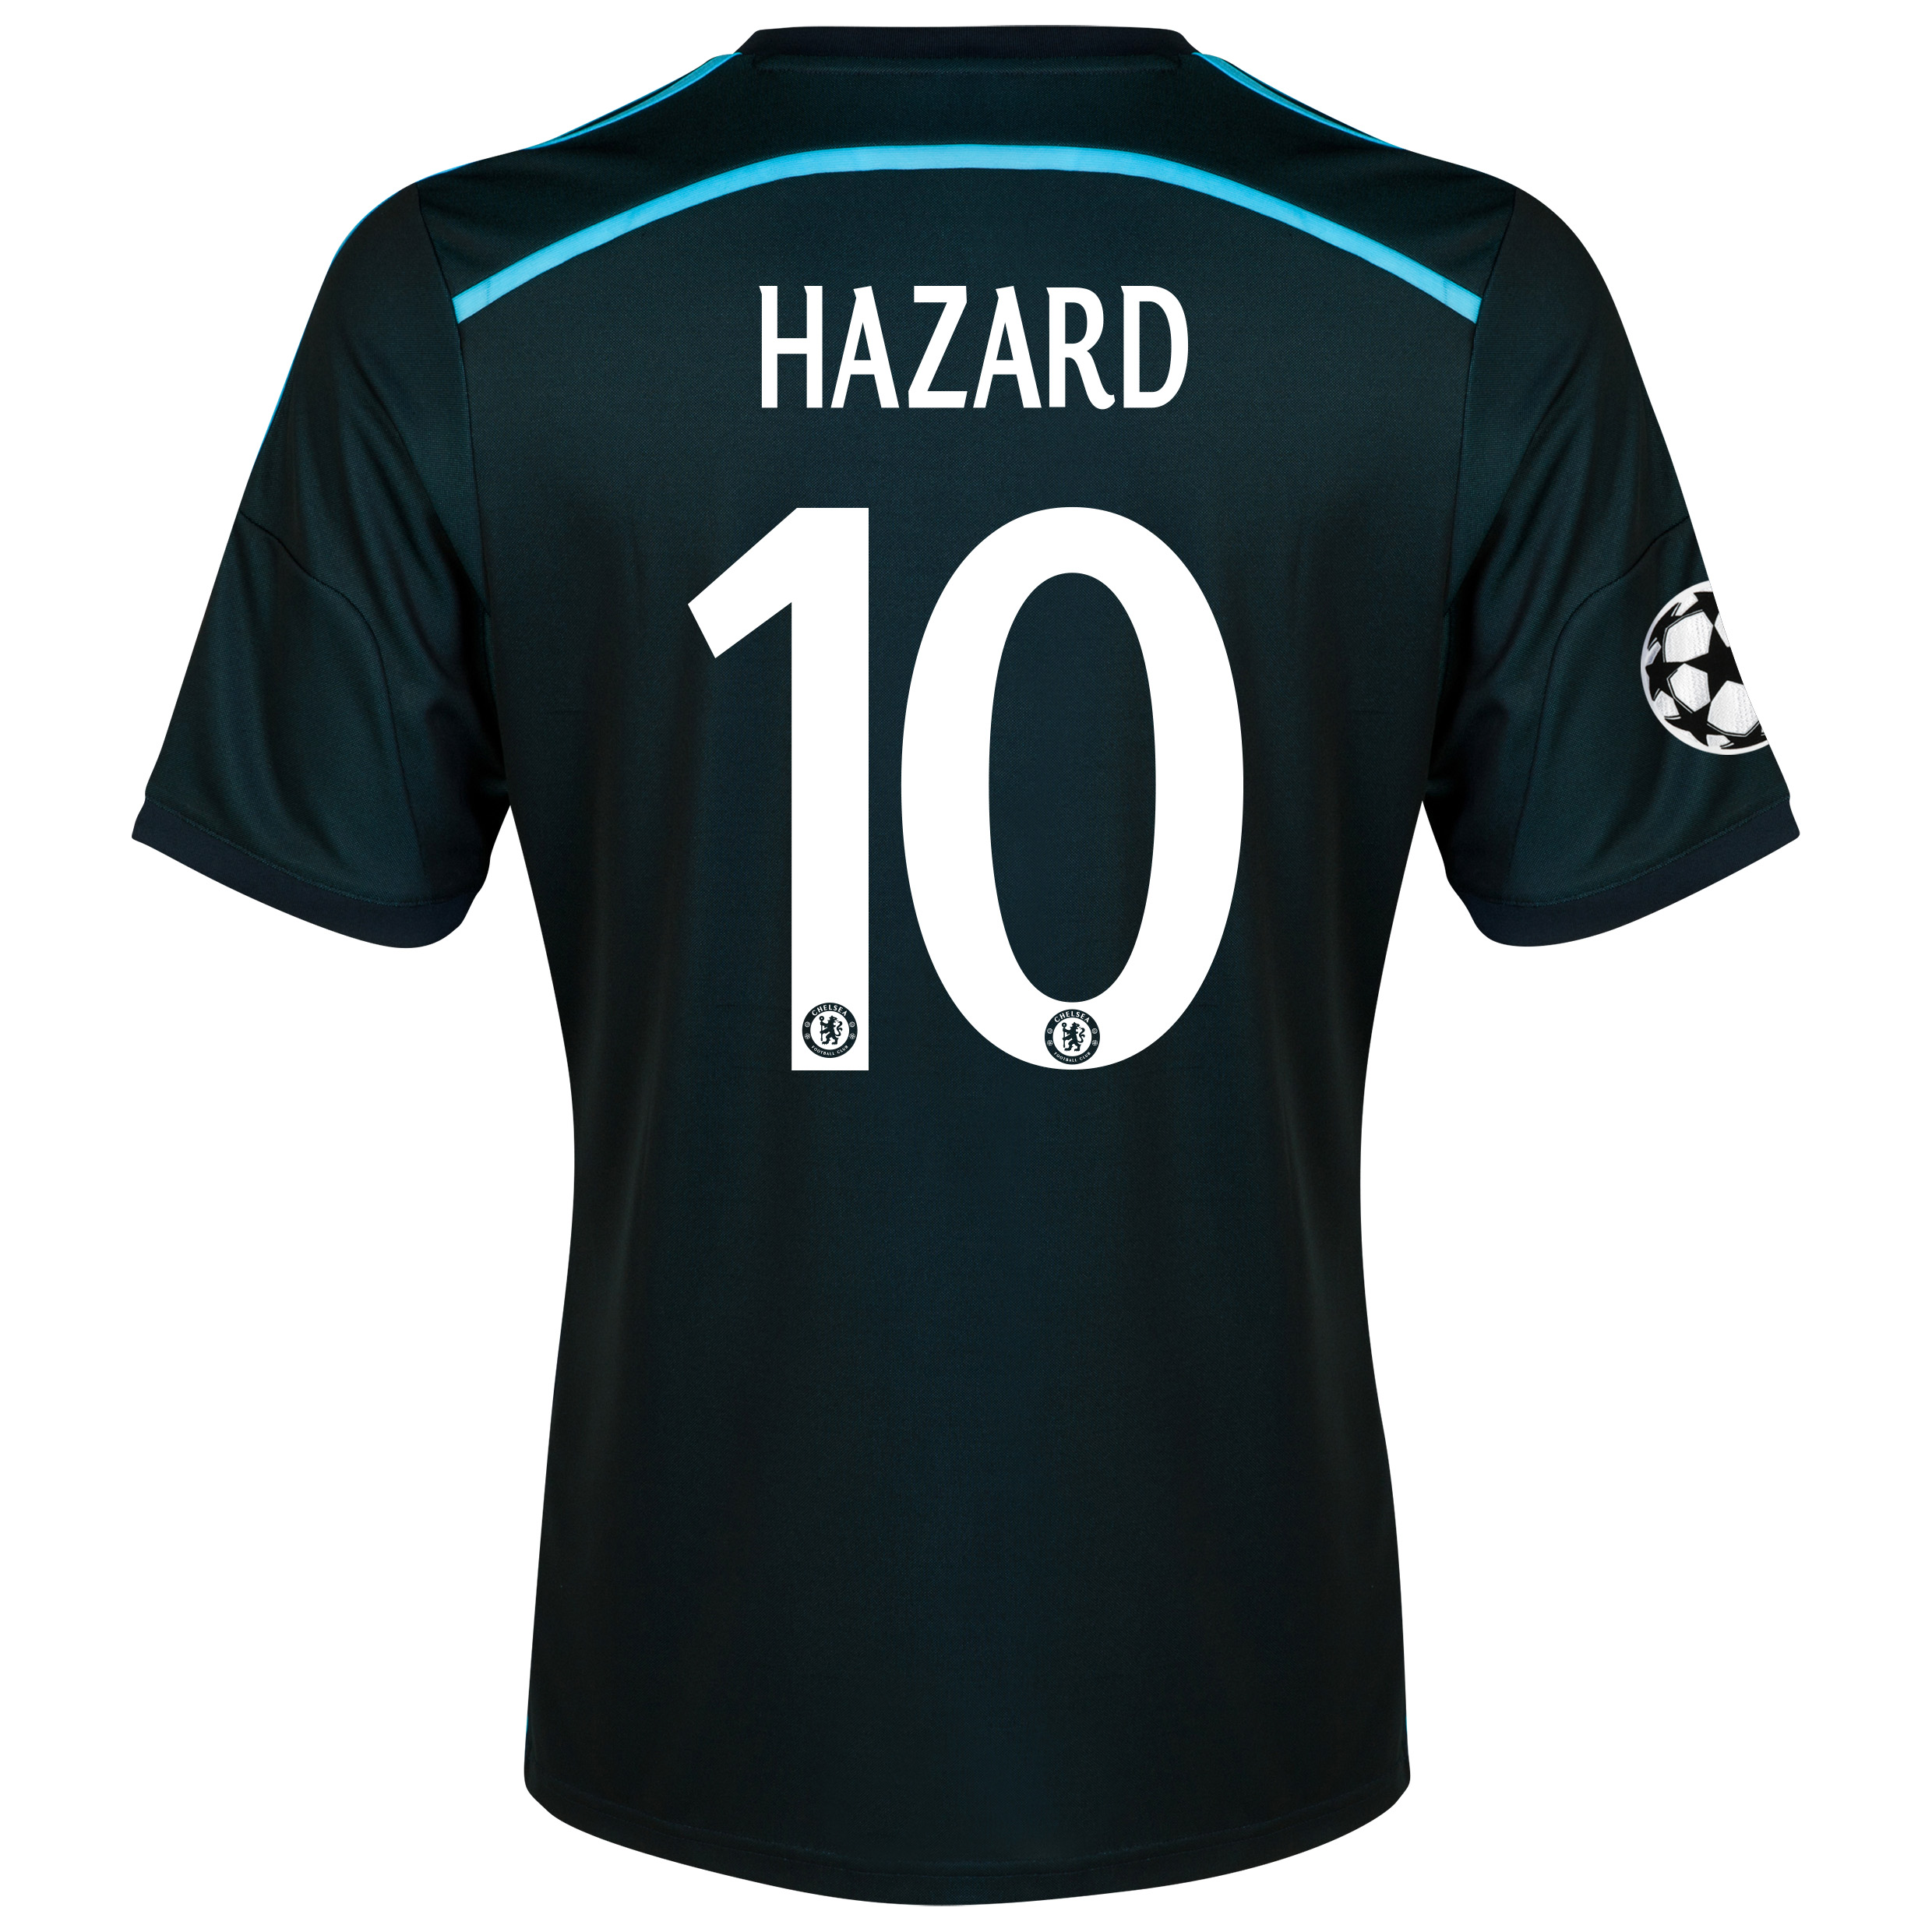 Chelsea UEFA Champions League Third Shirt 2014/15 with Hazard 10 printing